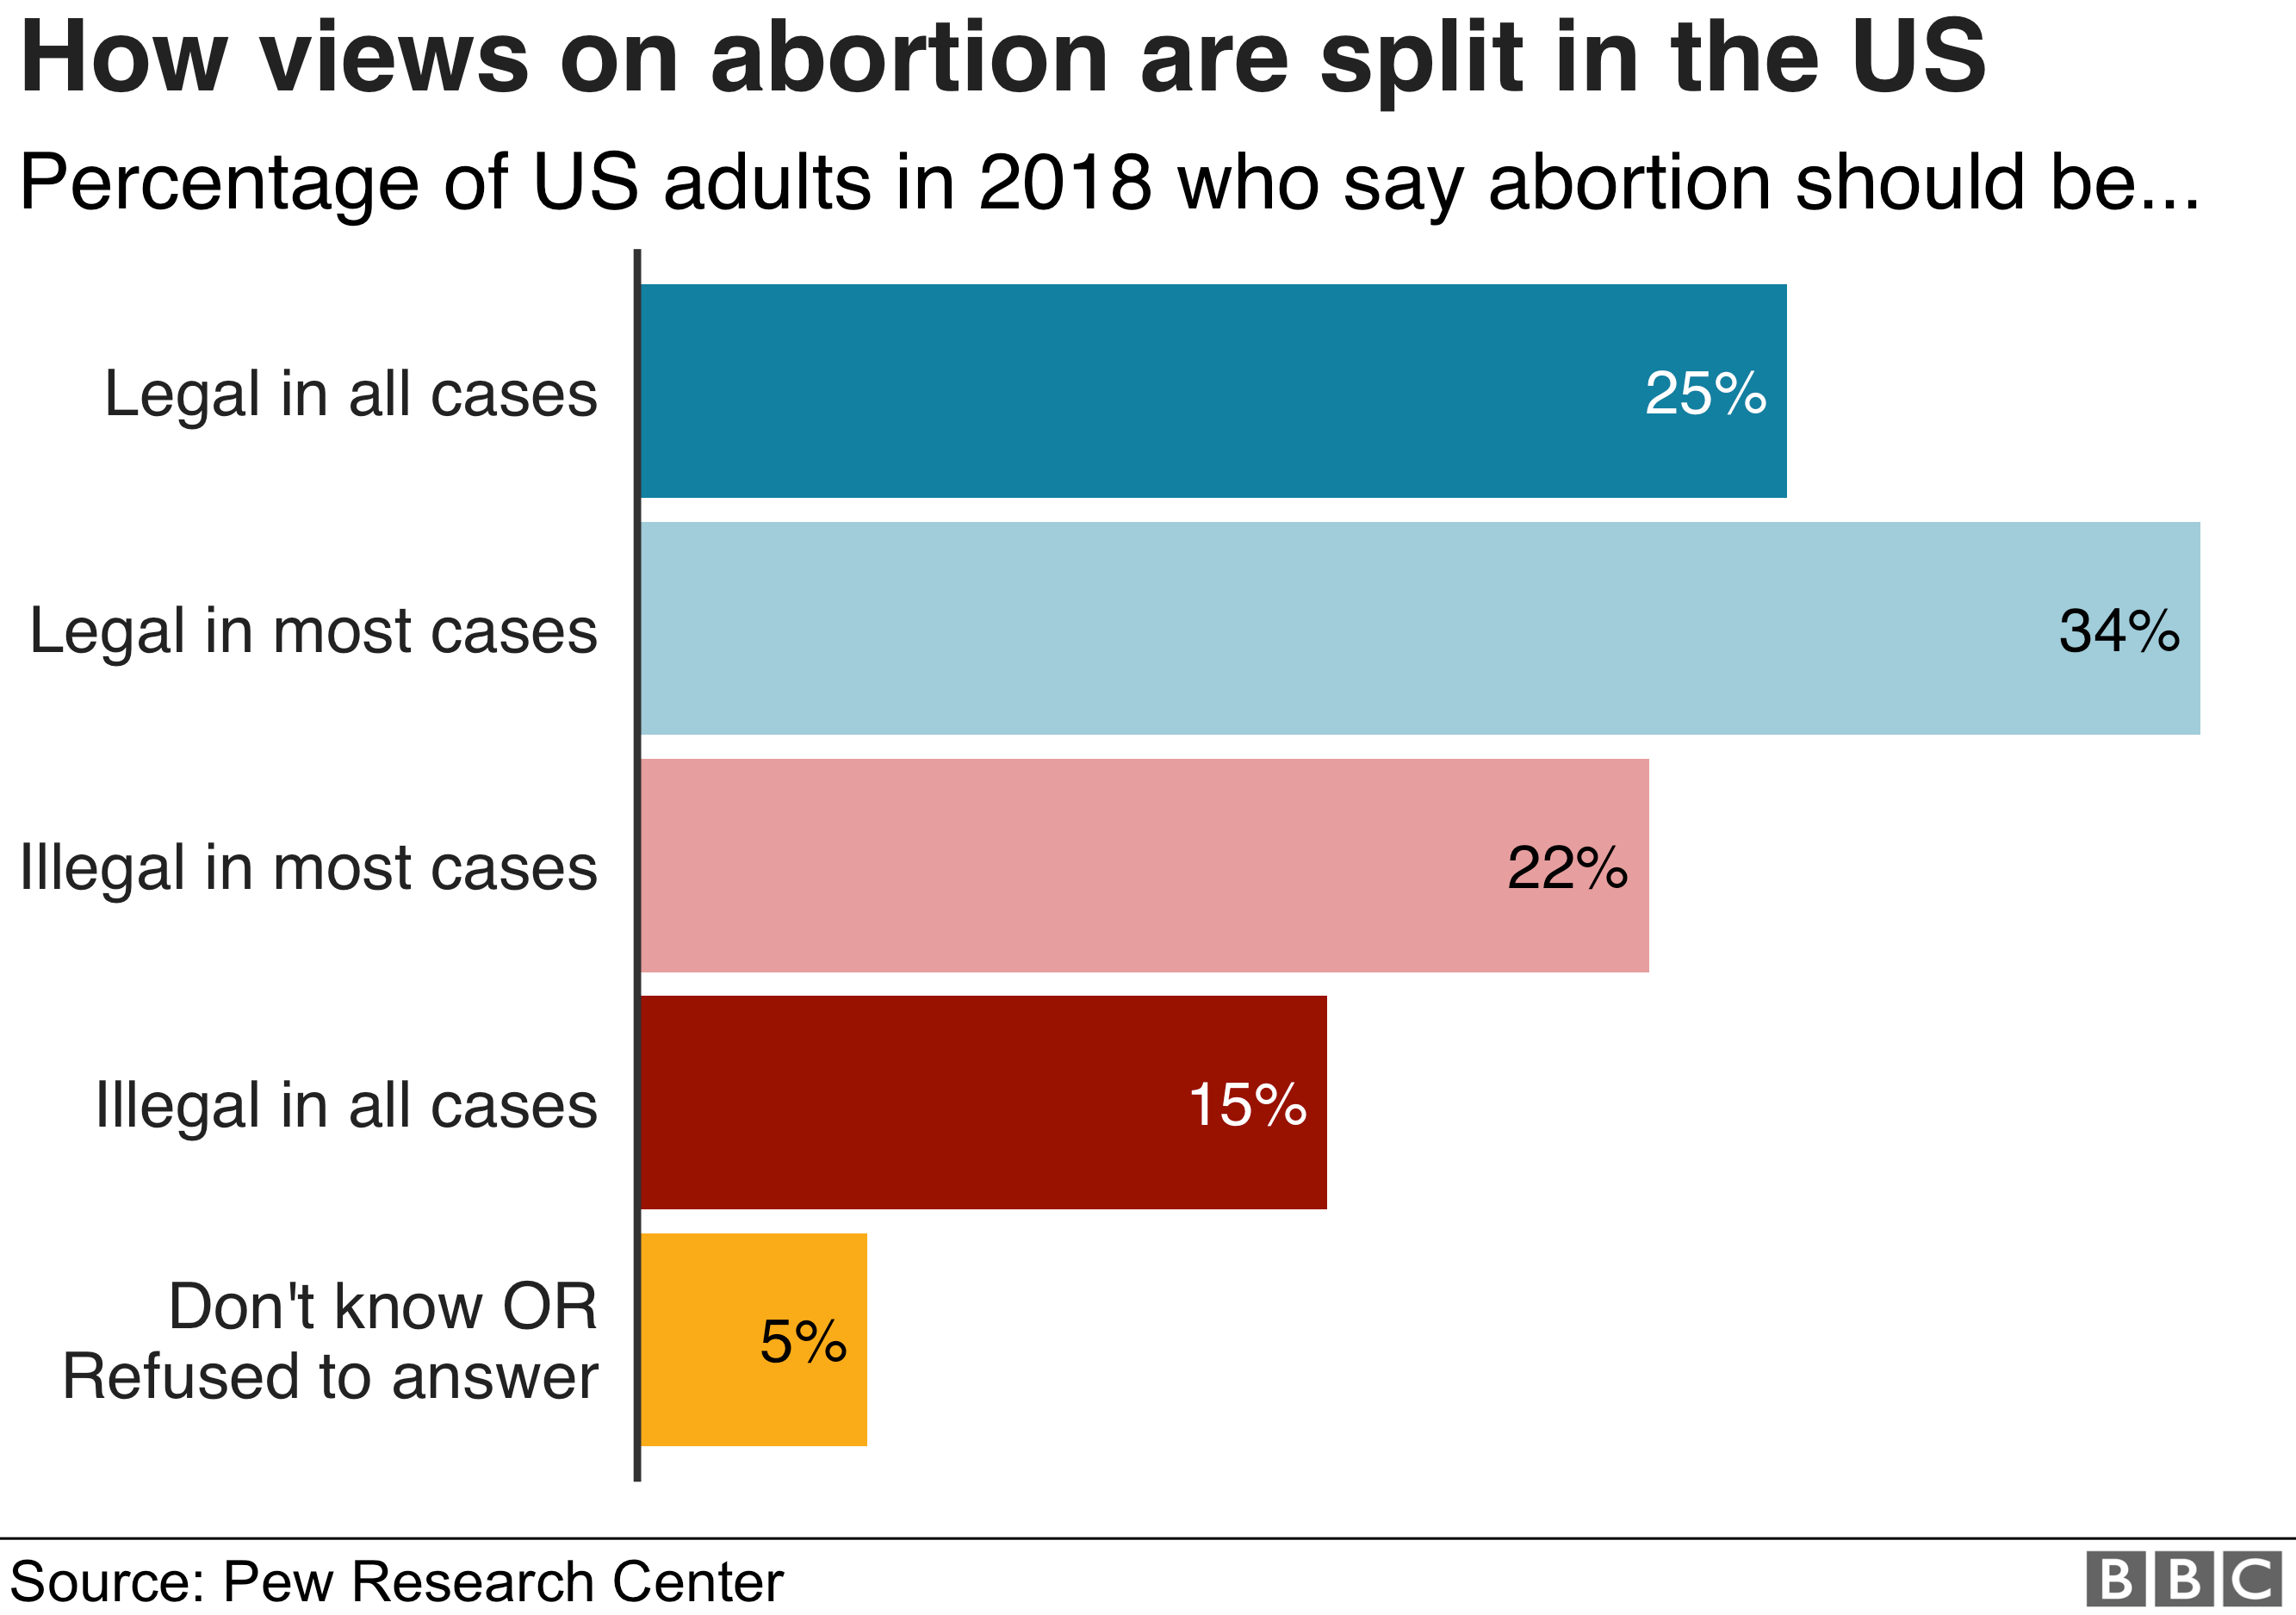 attitudes to abortion in US